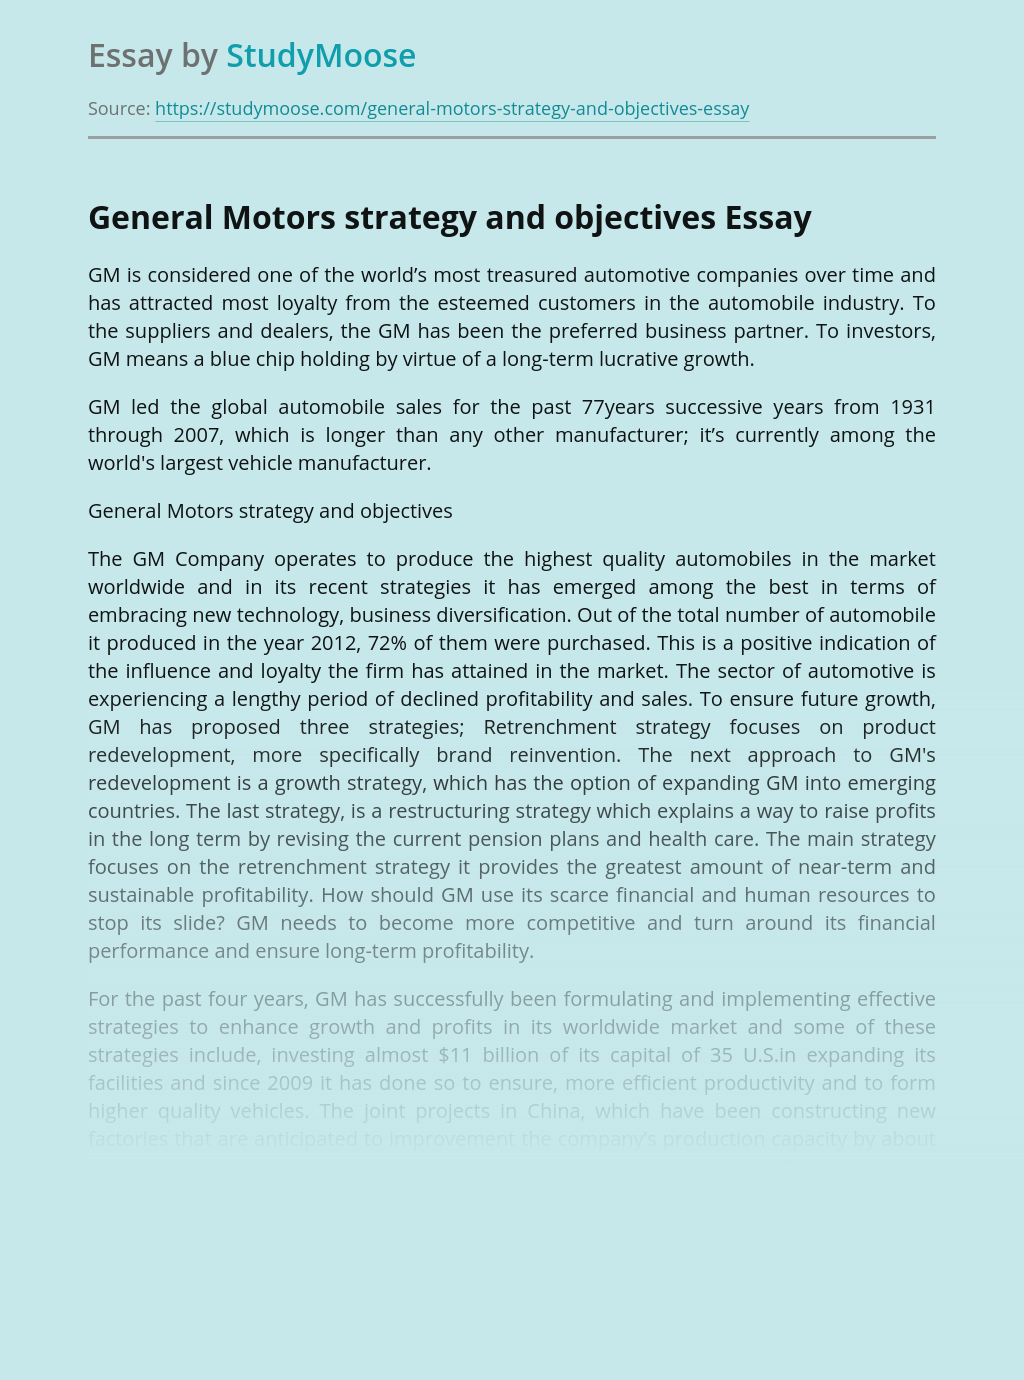 General Motors Strategy and Objectives